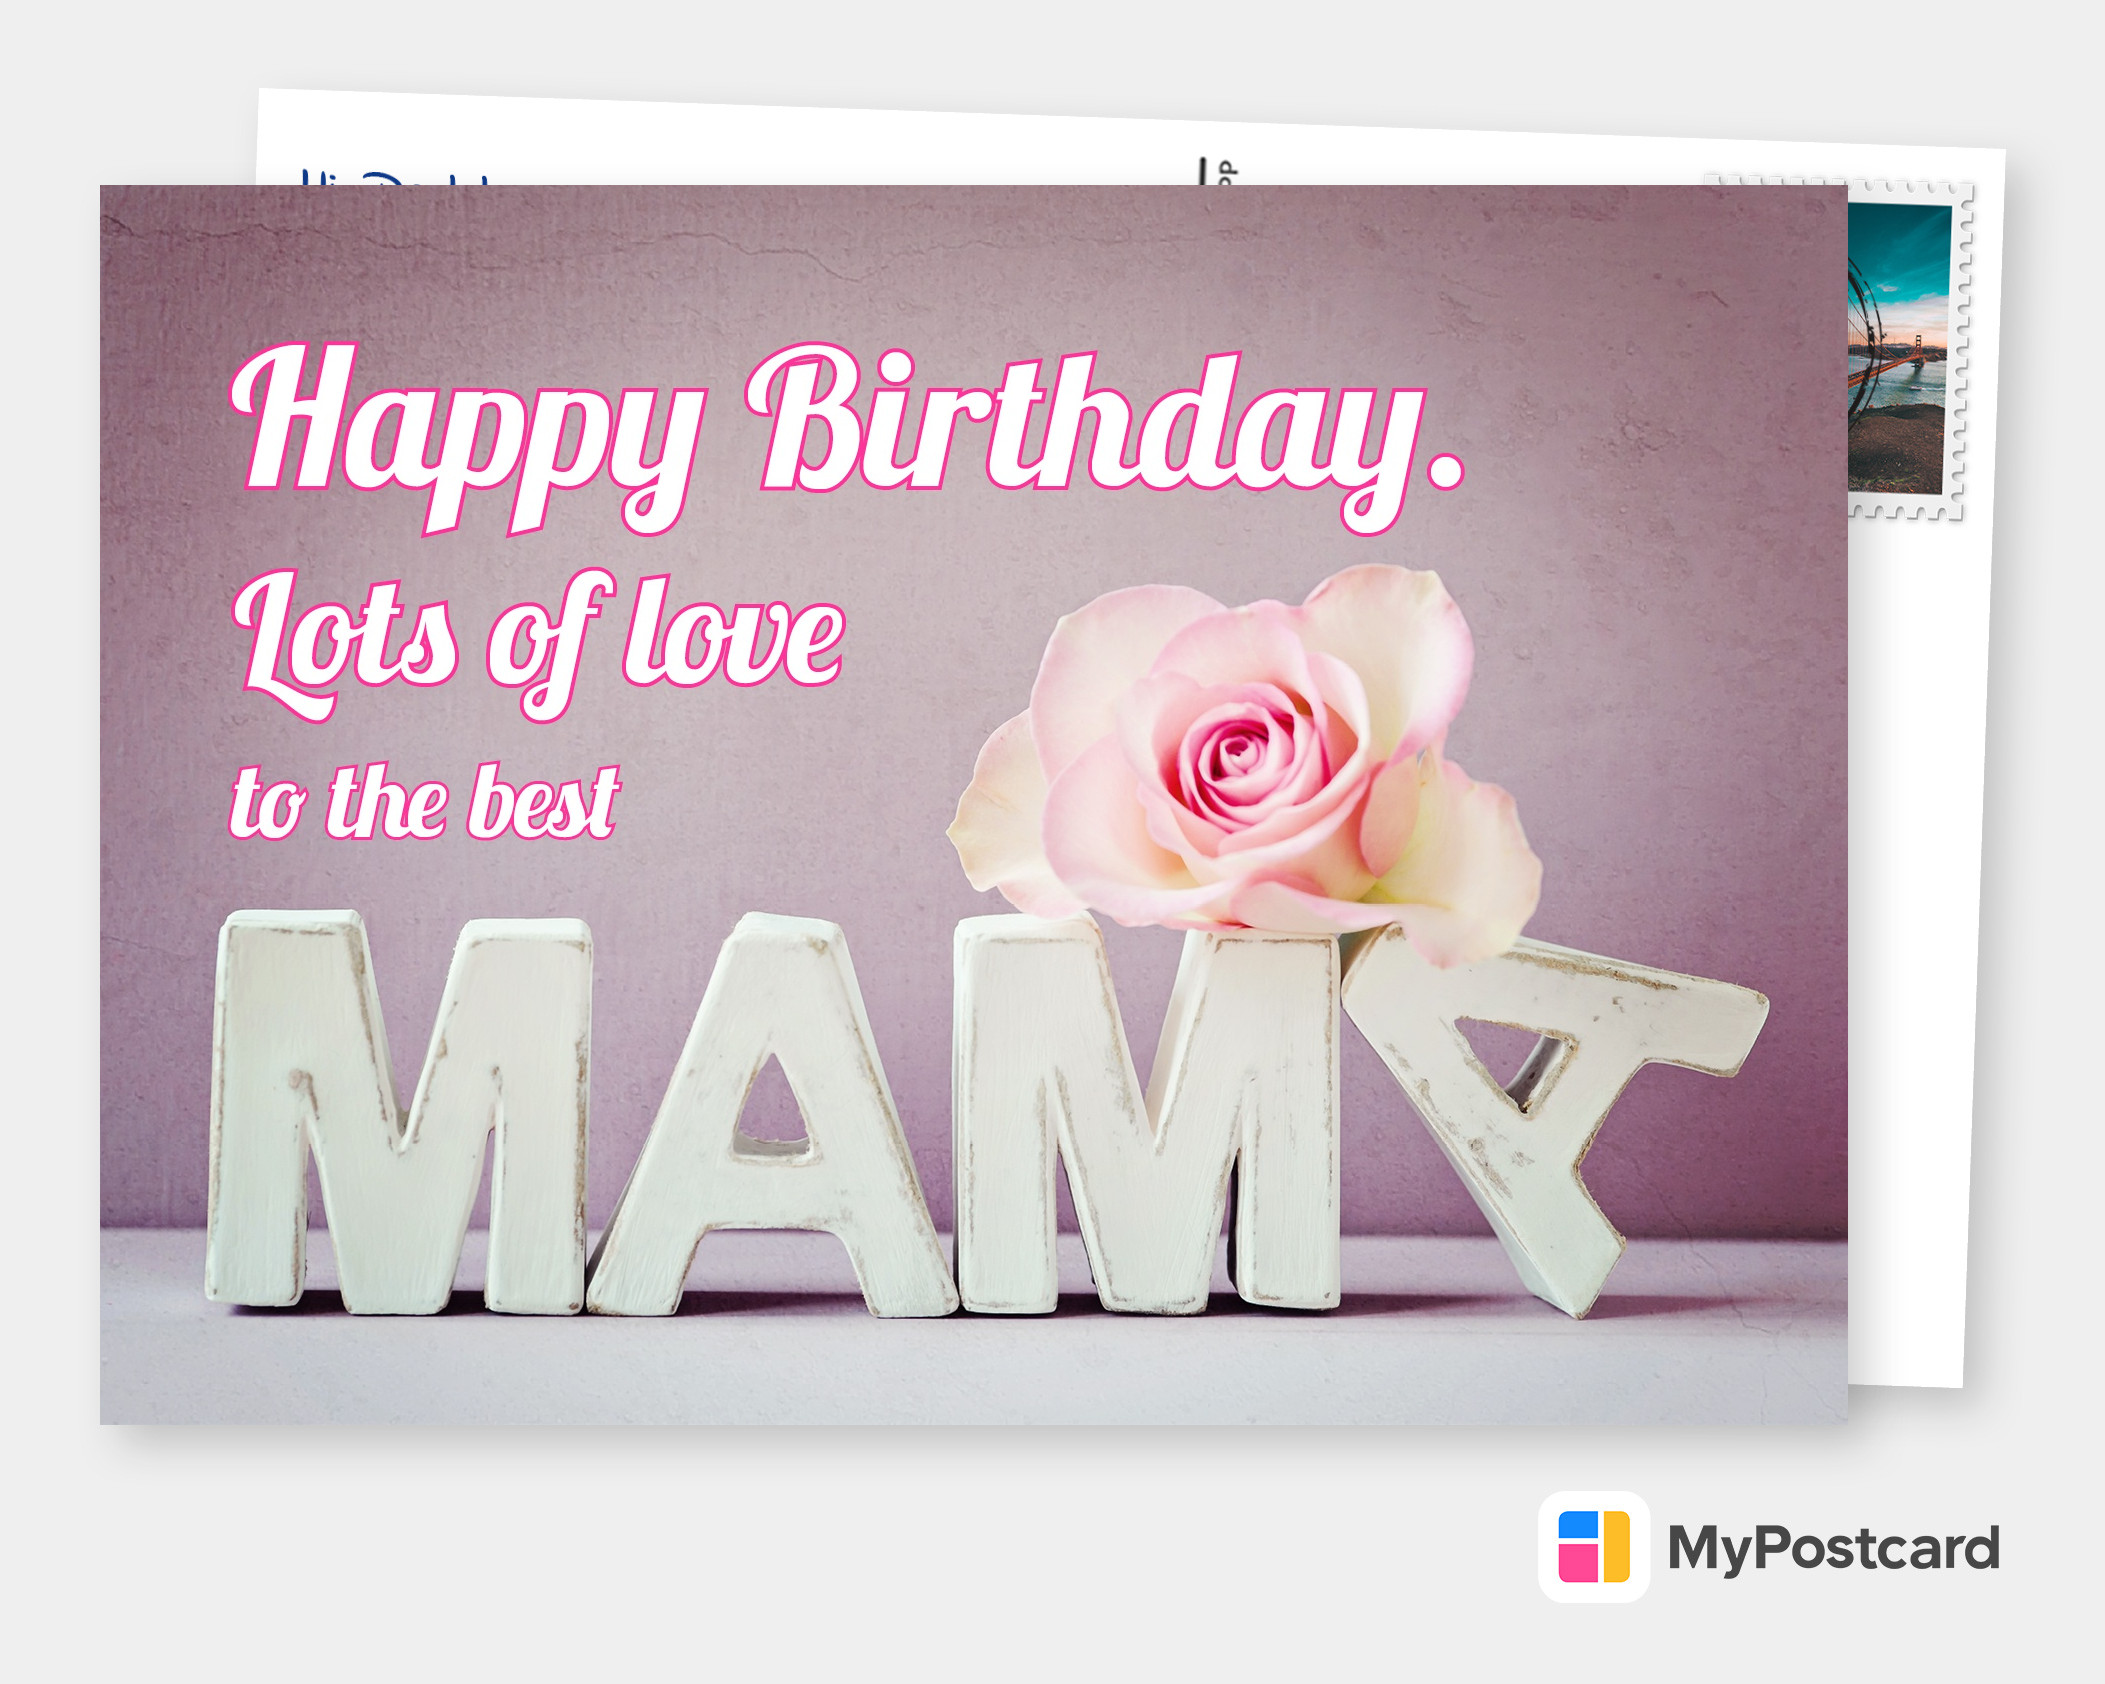 Create Your Own Birthday Cards Online Printed Mailed For You International Free Shipping Print Your Birthday Cards Customized Photo Cards